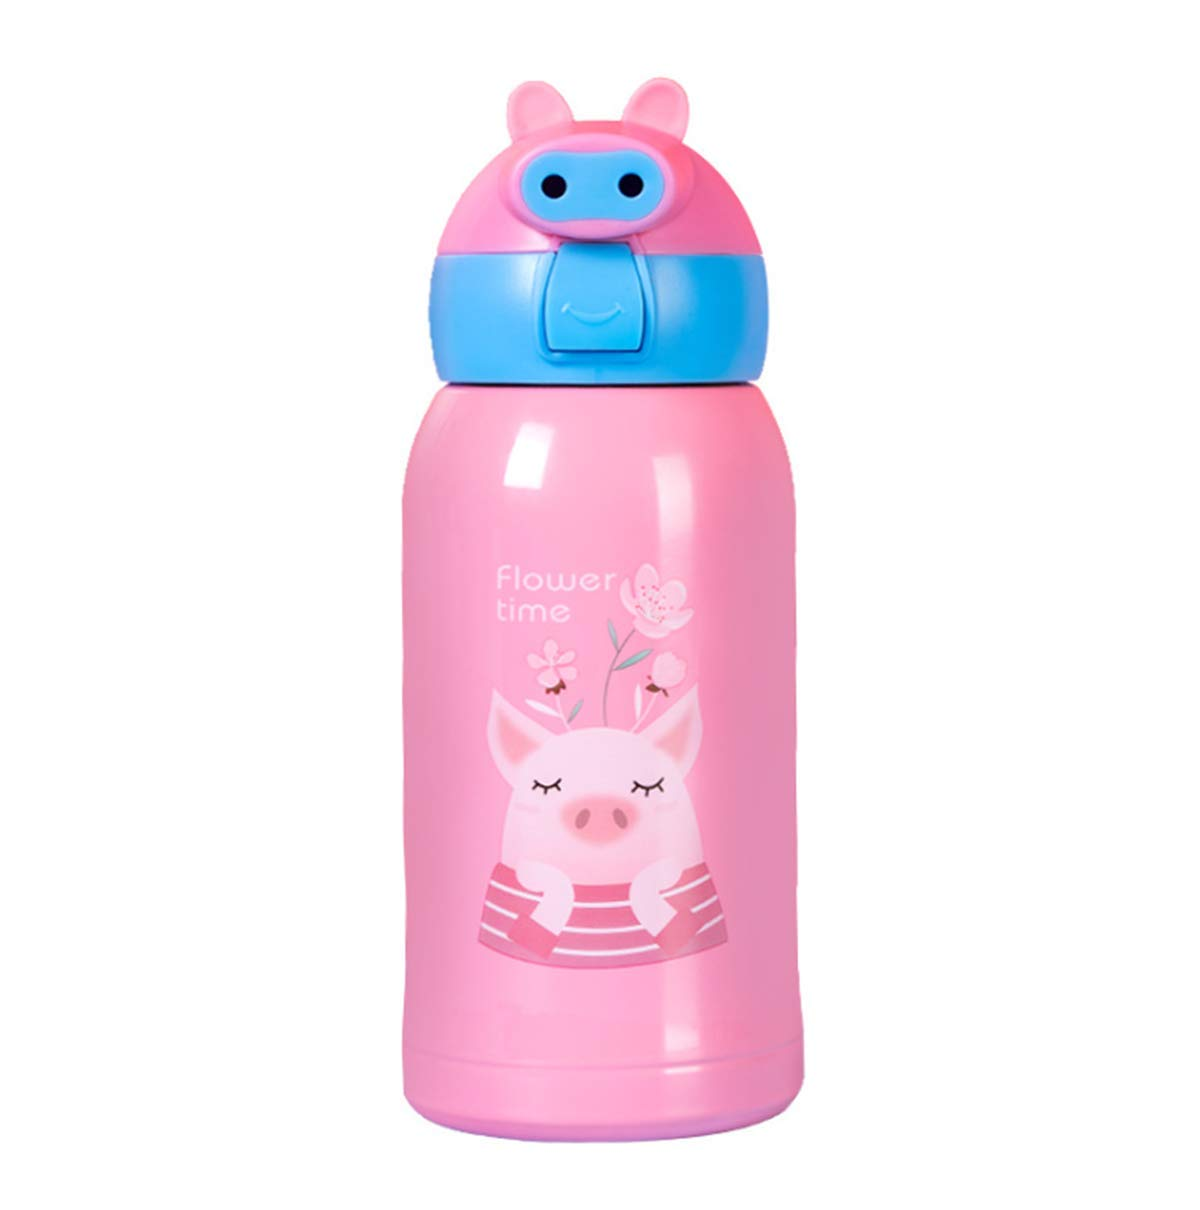 XIUHAO Pig Vacuum Flask, Stainless Steel Vacuum Flask Long-Term Insulation Leak-Proof Soft Silicone Suction Tube for Children by XIUHAO